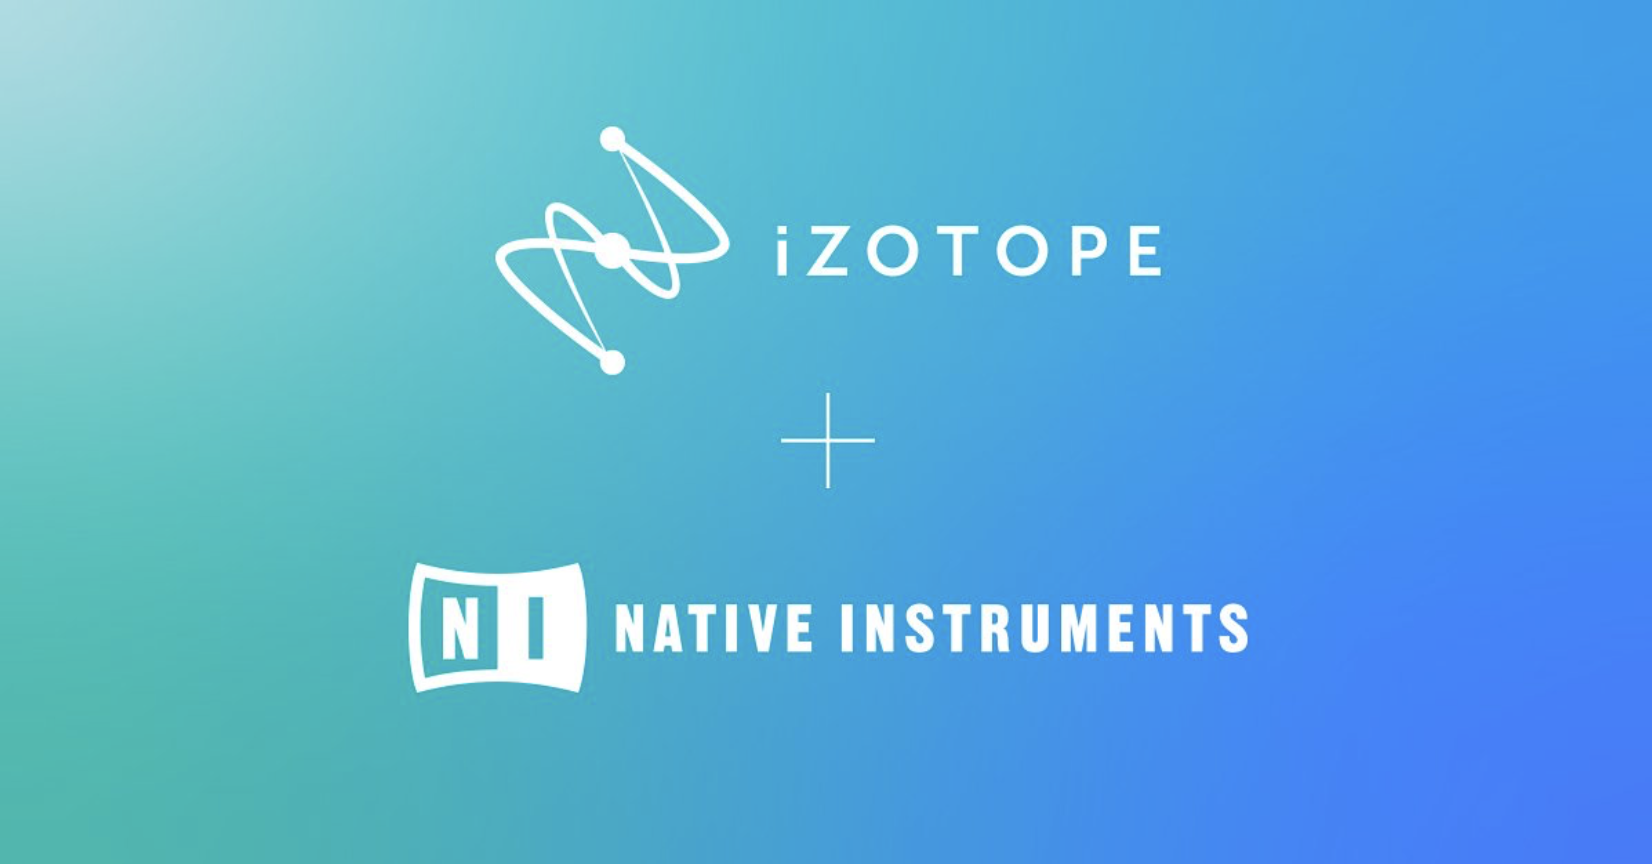 iZotope + NATIVE INSTRUMENTS